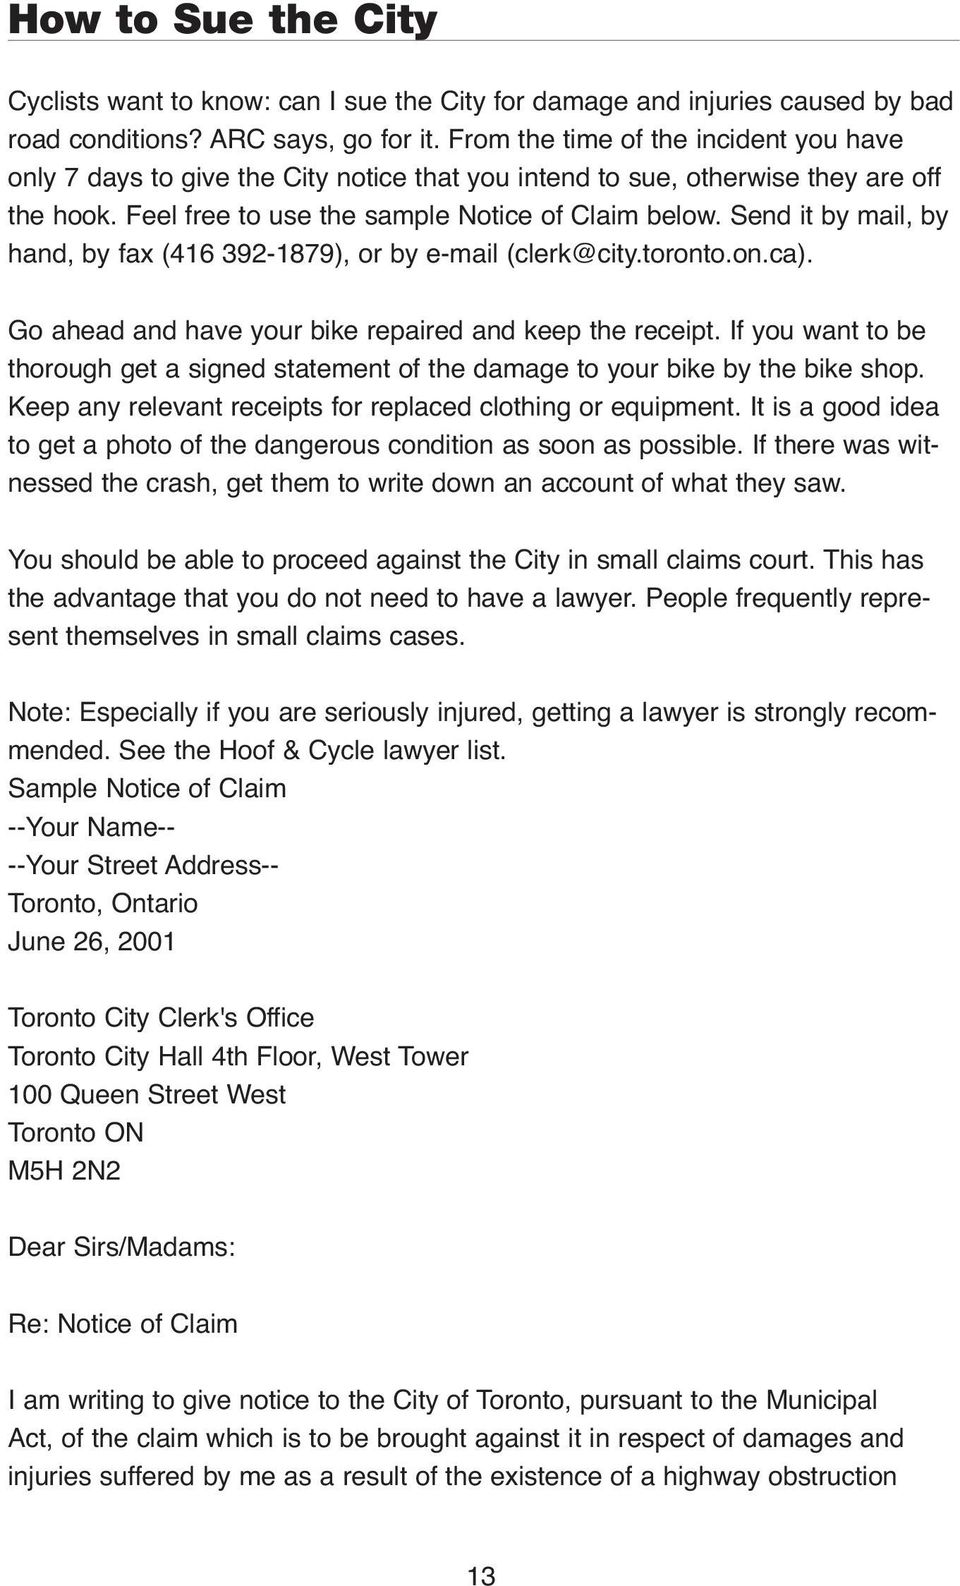 Send it by mail, by hand, by fax (416 392-1879), or by e-mail (clerk@city.toronto.on.ca). Go ahead and have your bike repaired and keep the receipt.